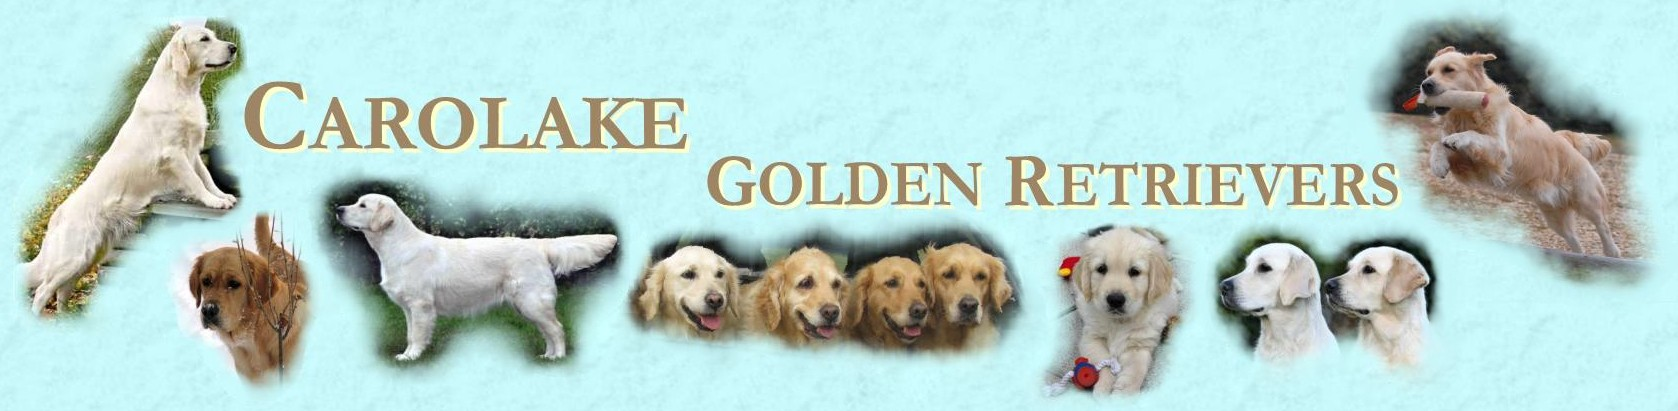 The Carolake Golden Retrievers